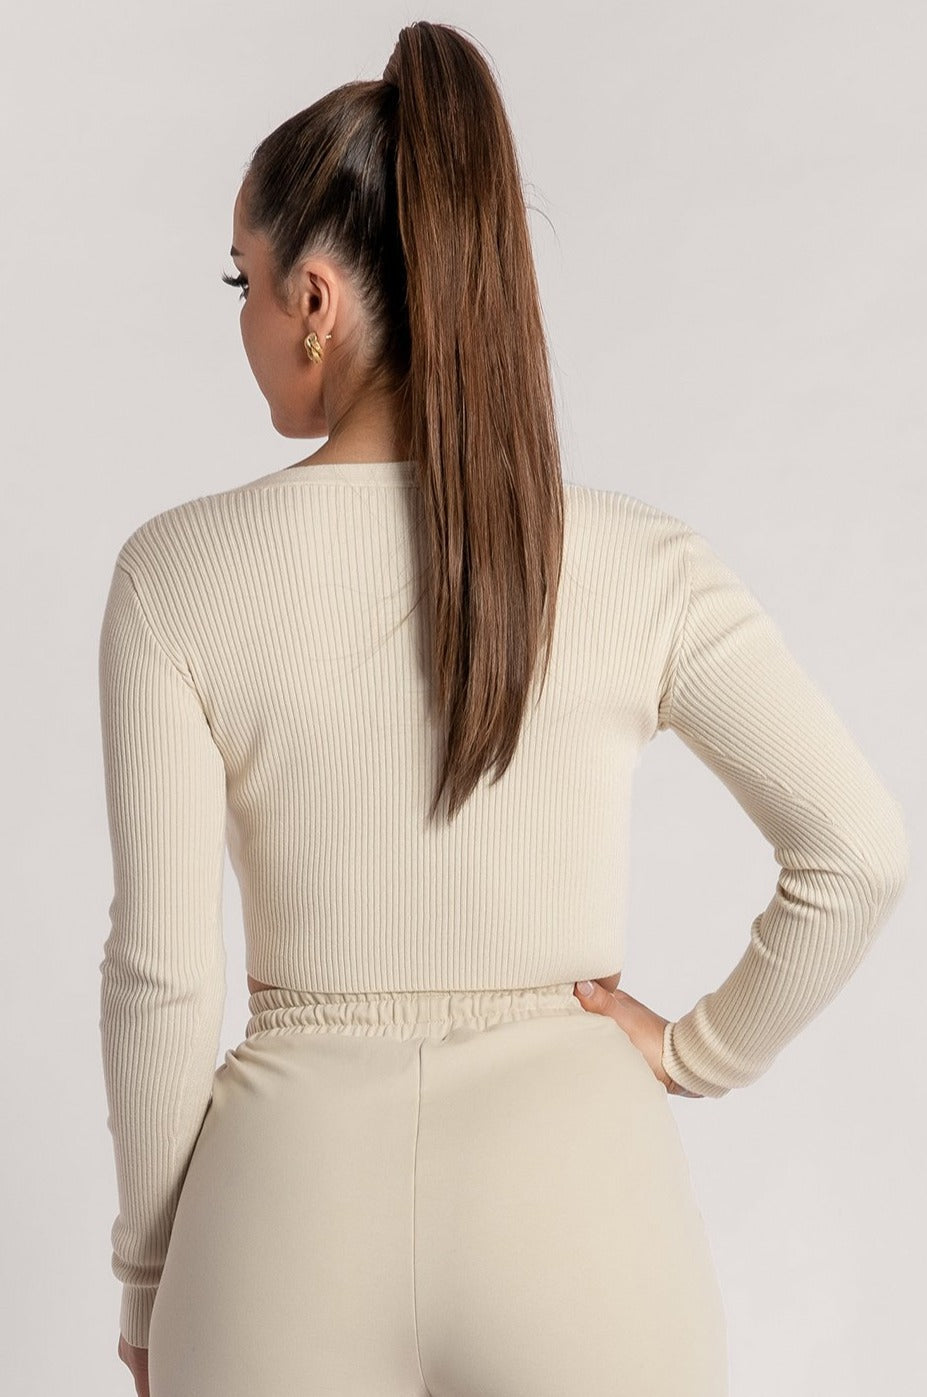 Bobbie Ribbed Tie Front Crop Top - Cream - MESHKI ?id=15900356214859